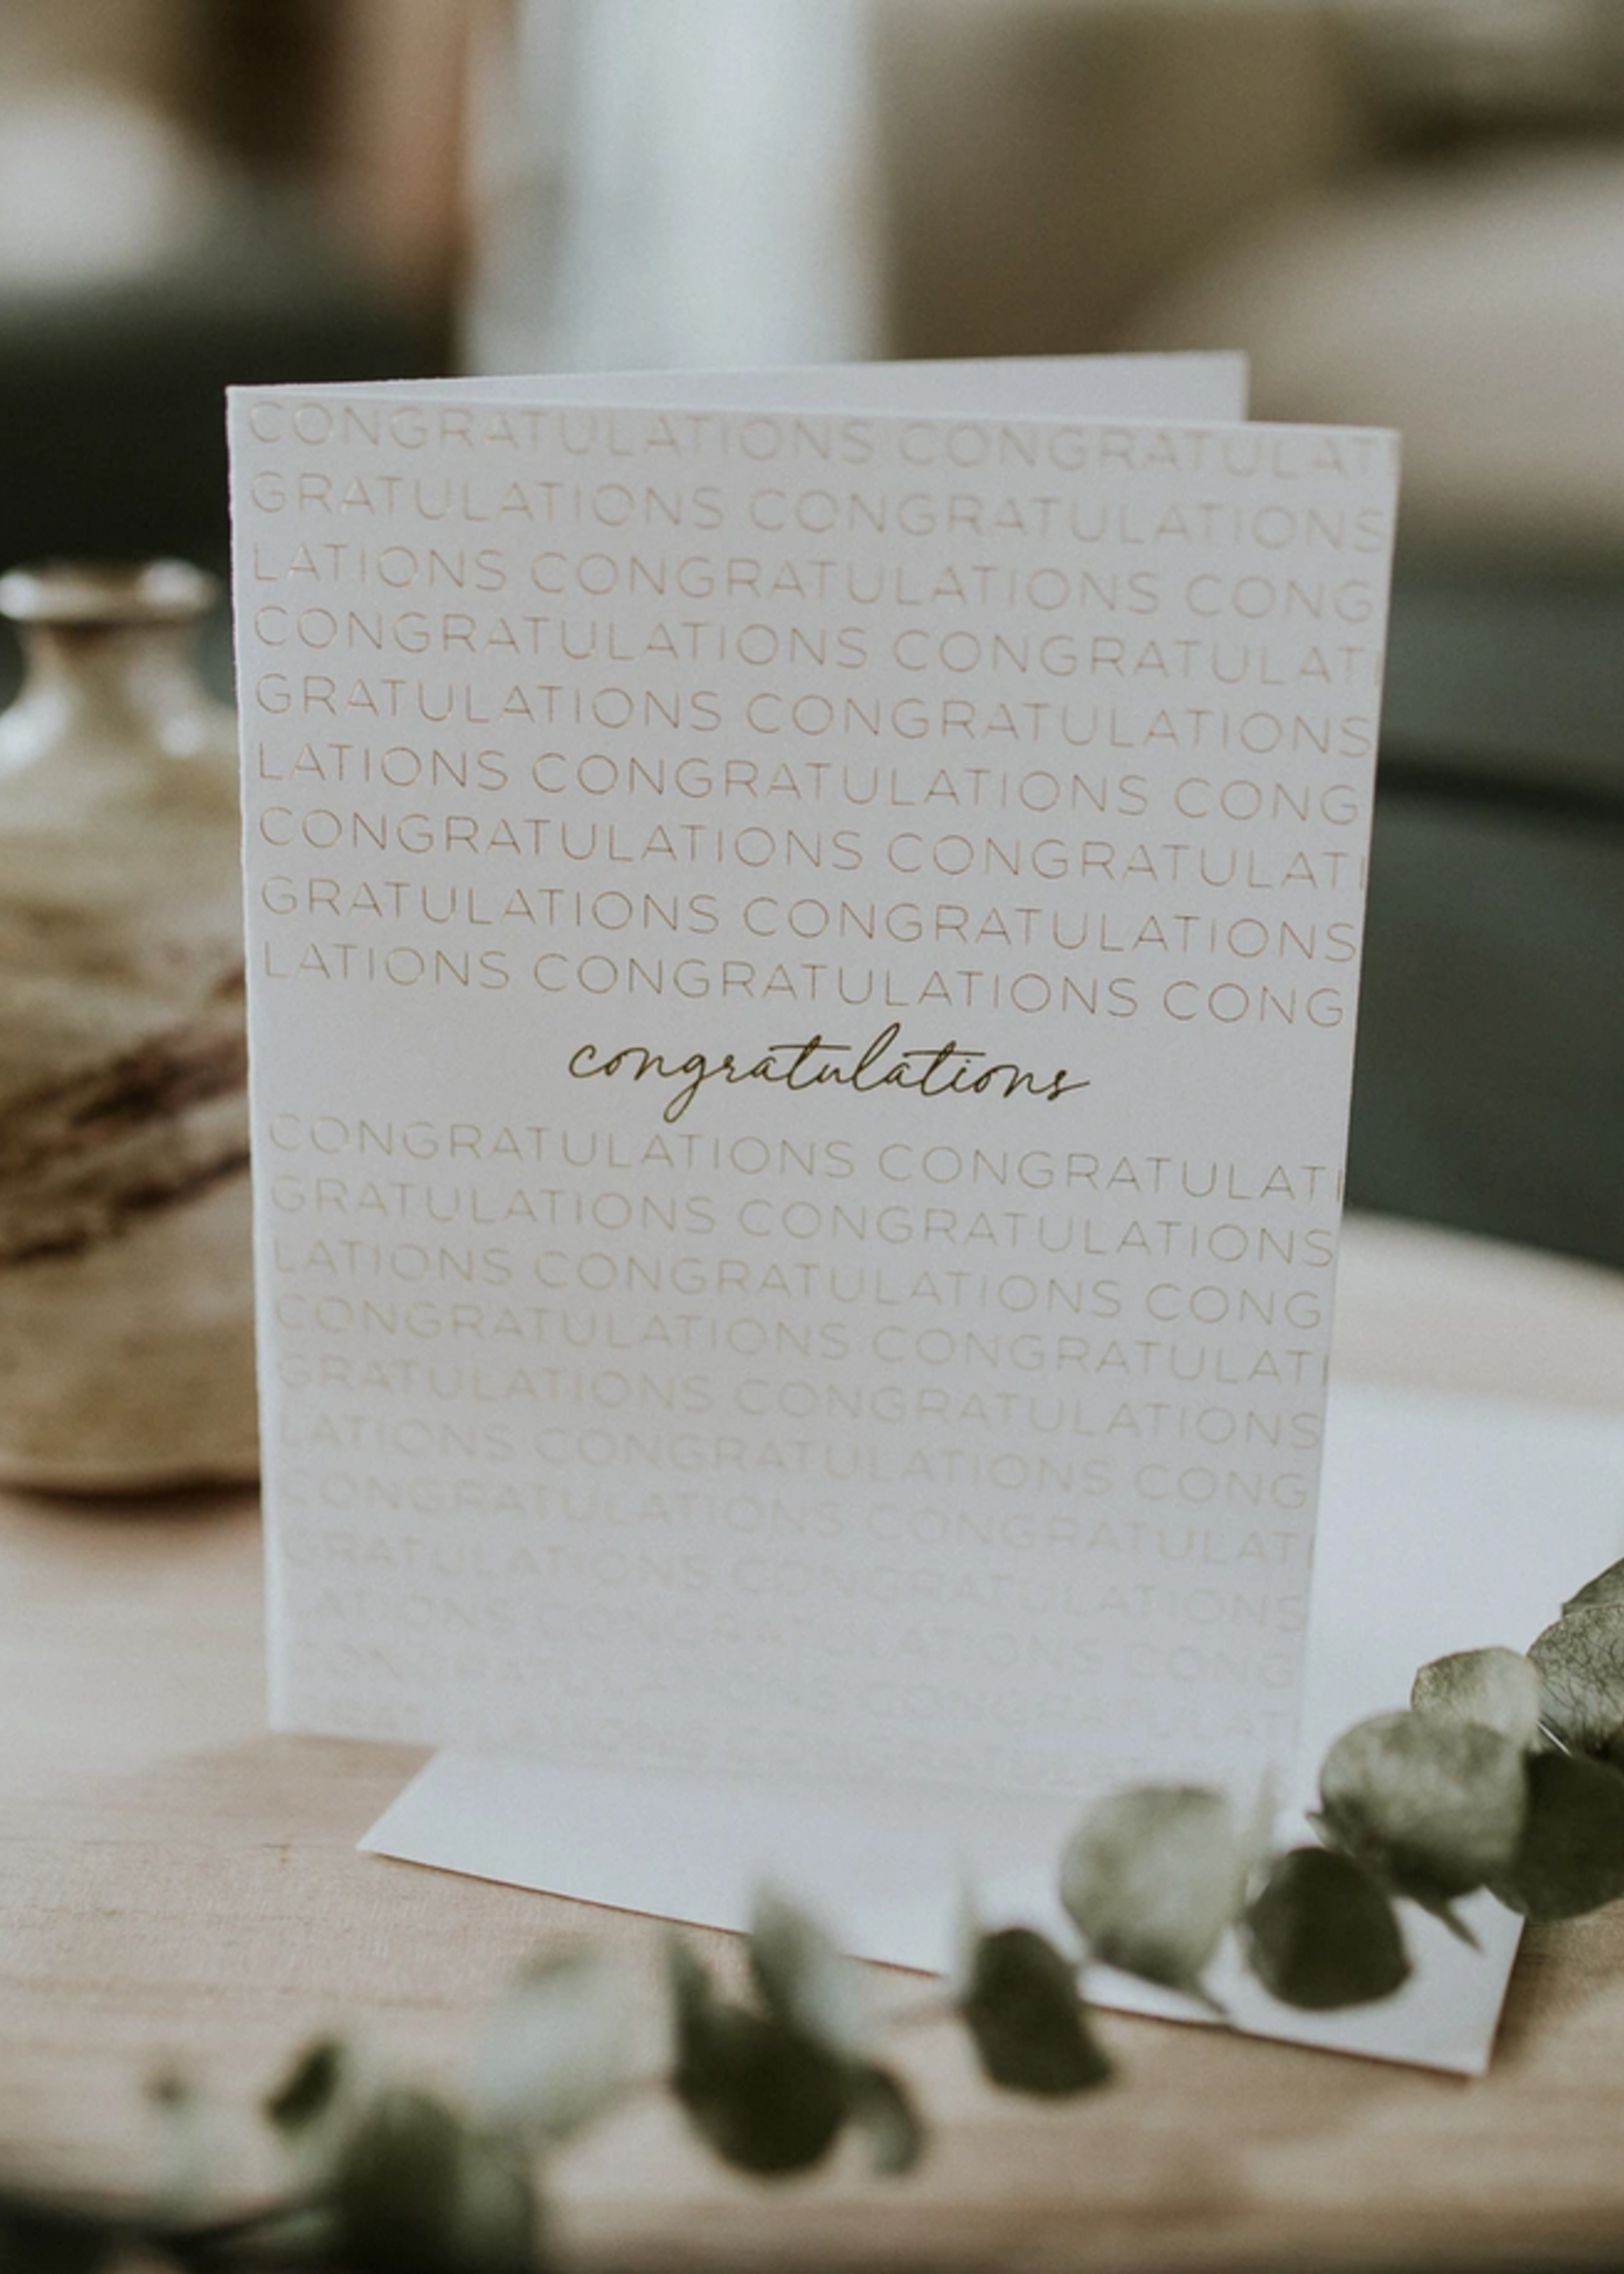 Wrinkle and Crease Congratulations card